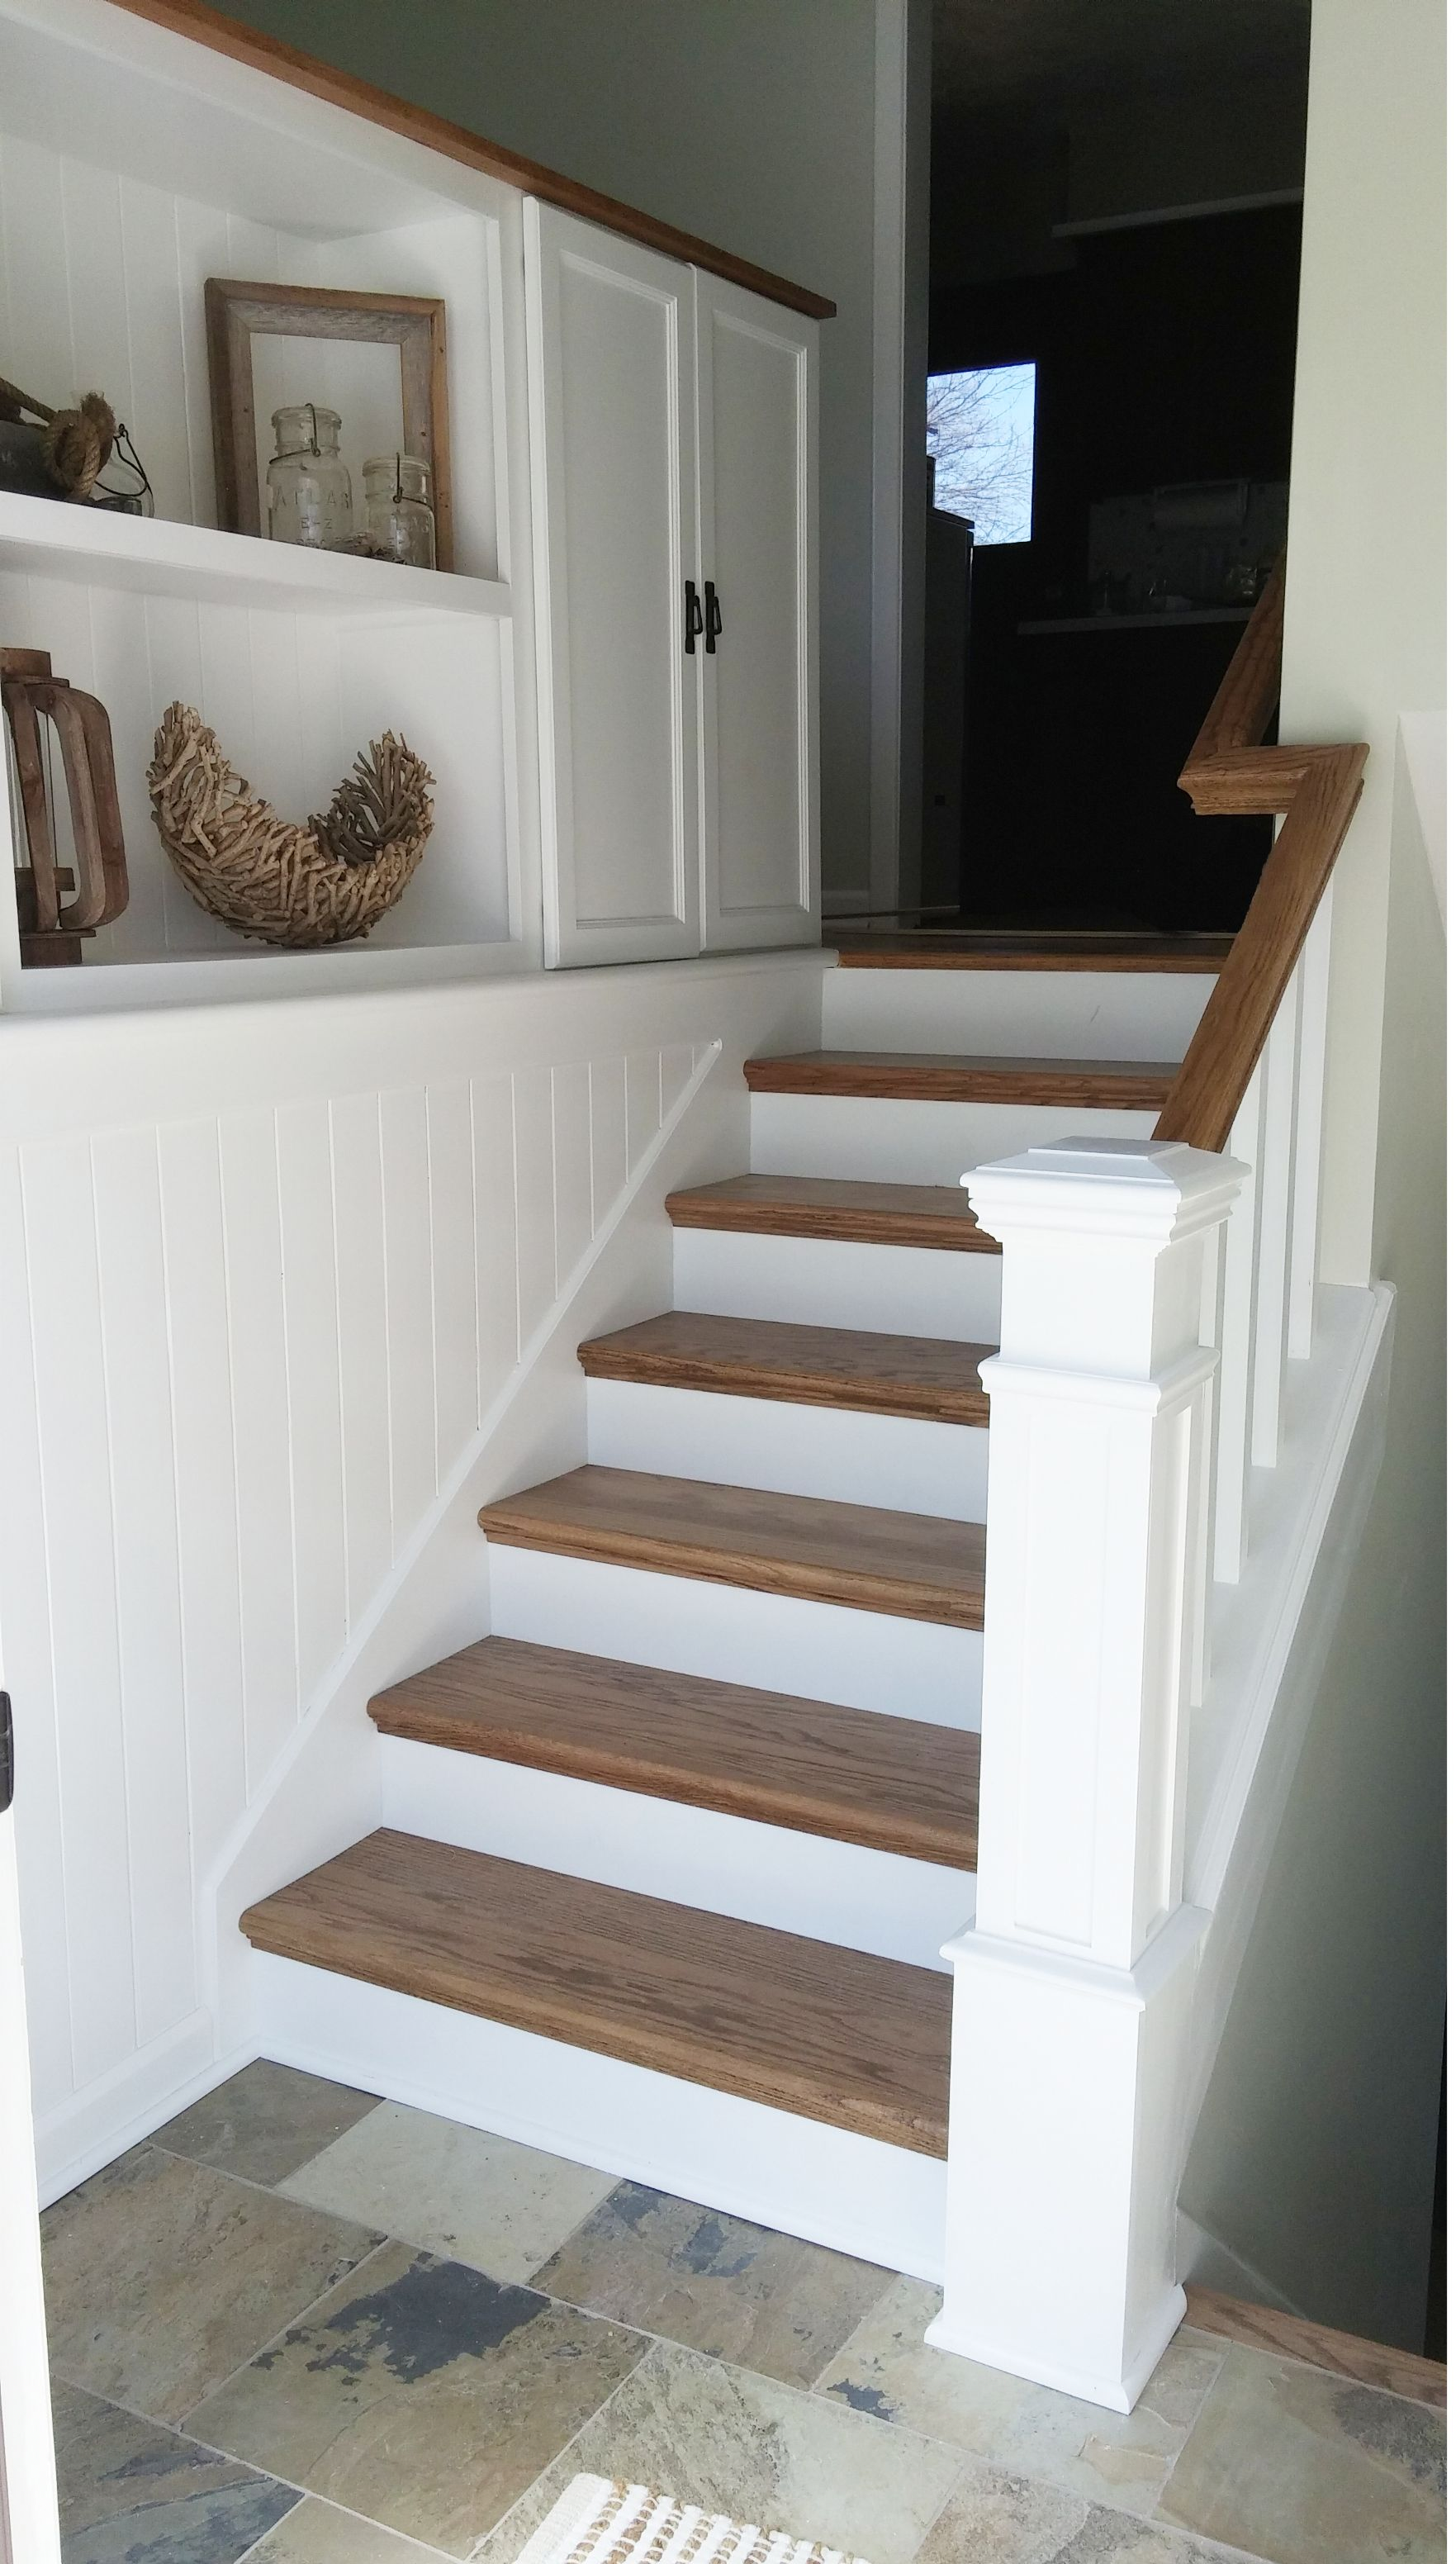 Diy Split Entry Remodel Added Storage Planking To Tie The Wall And Cabinets Together Changed Railings Split Entry Remodel Split Foyer Raised Ranch Remodel